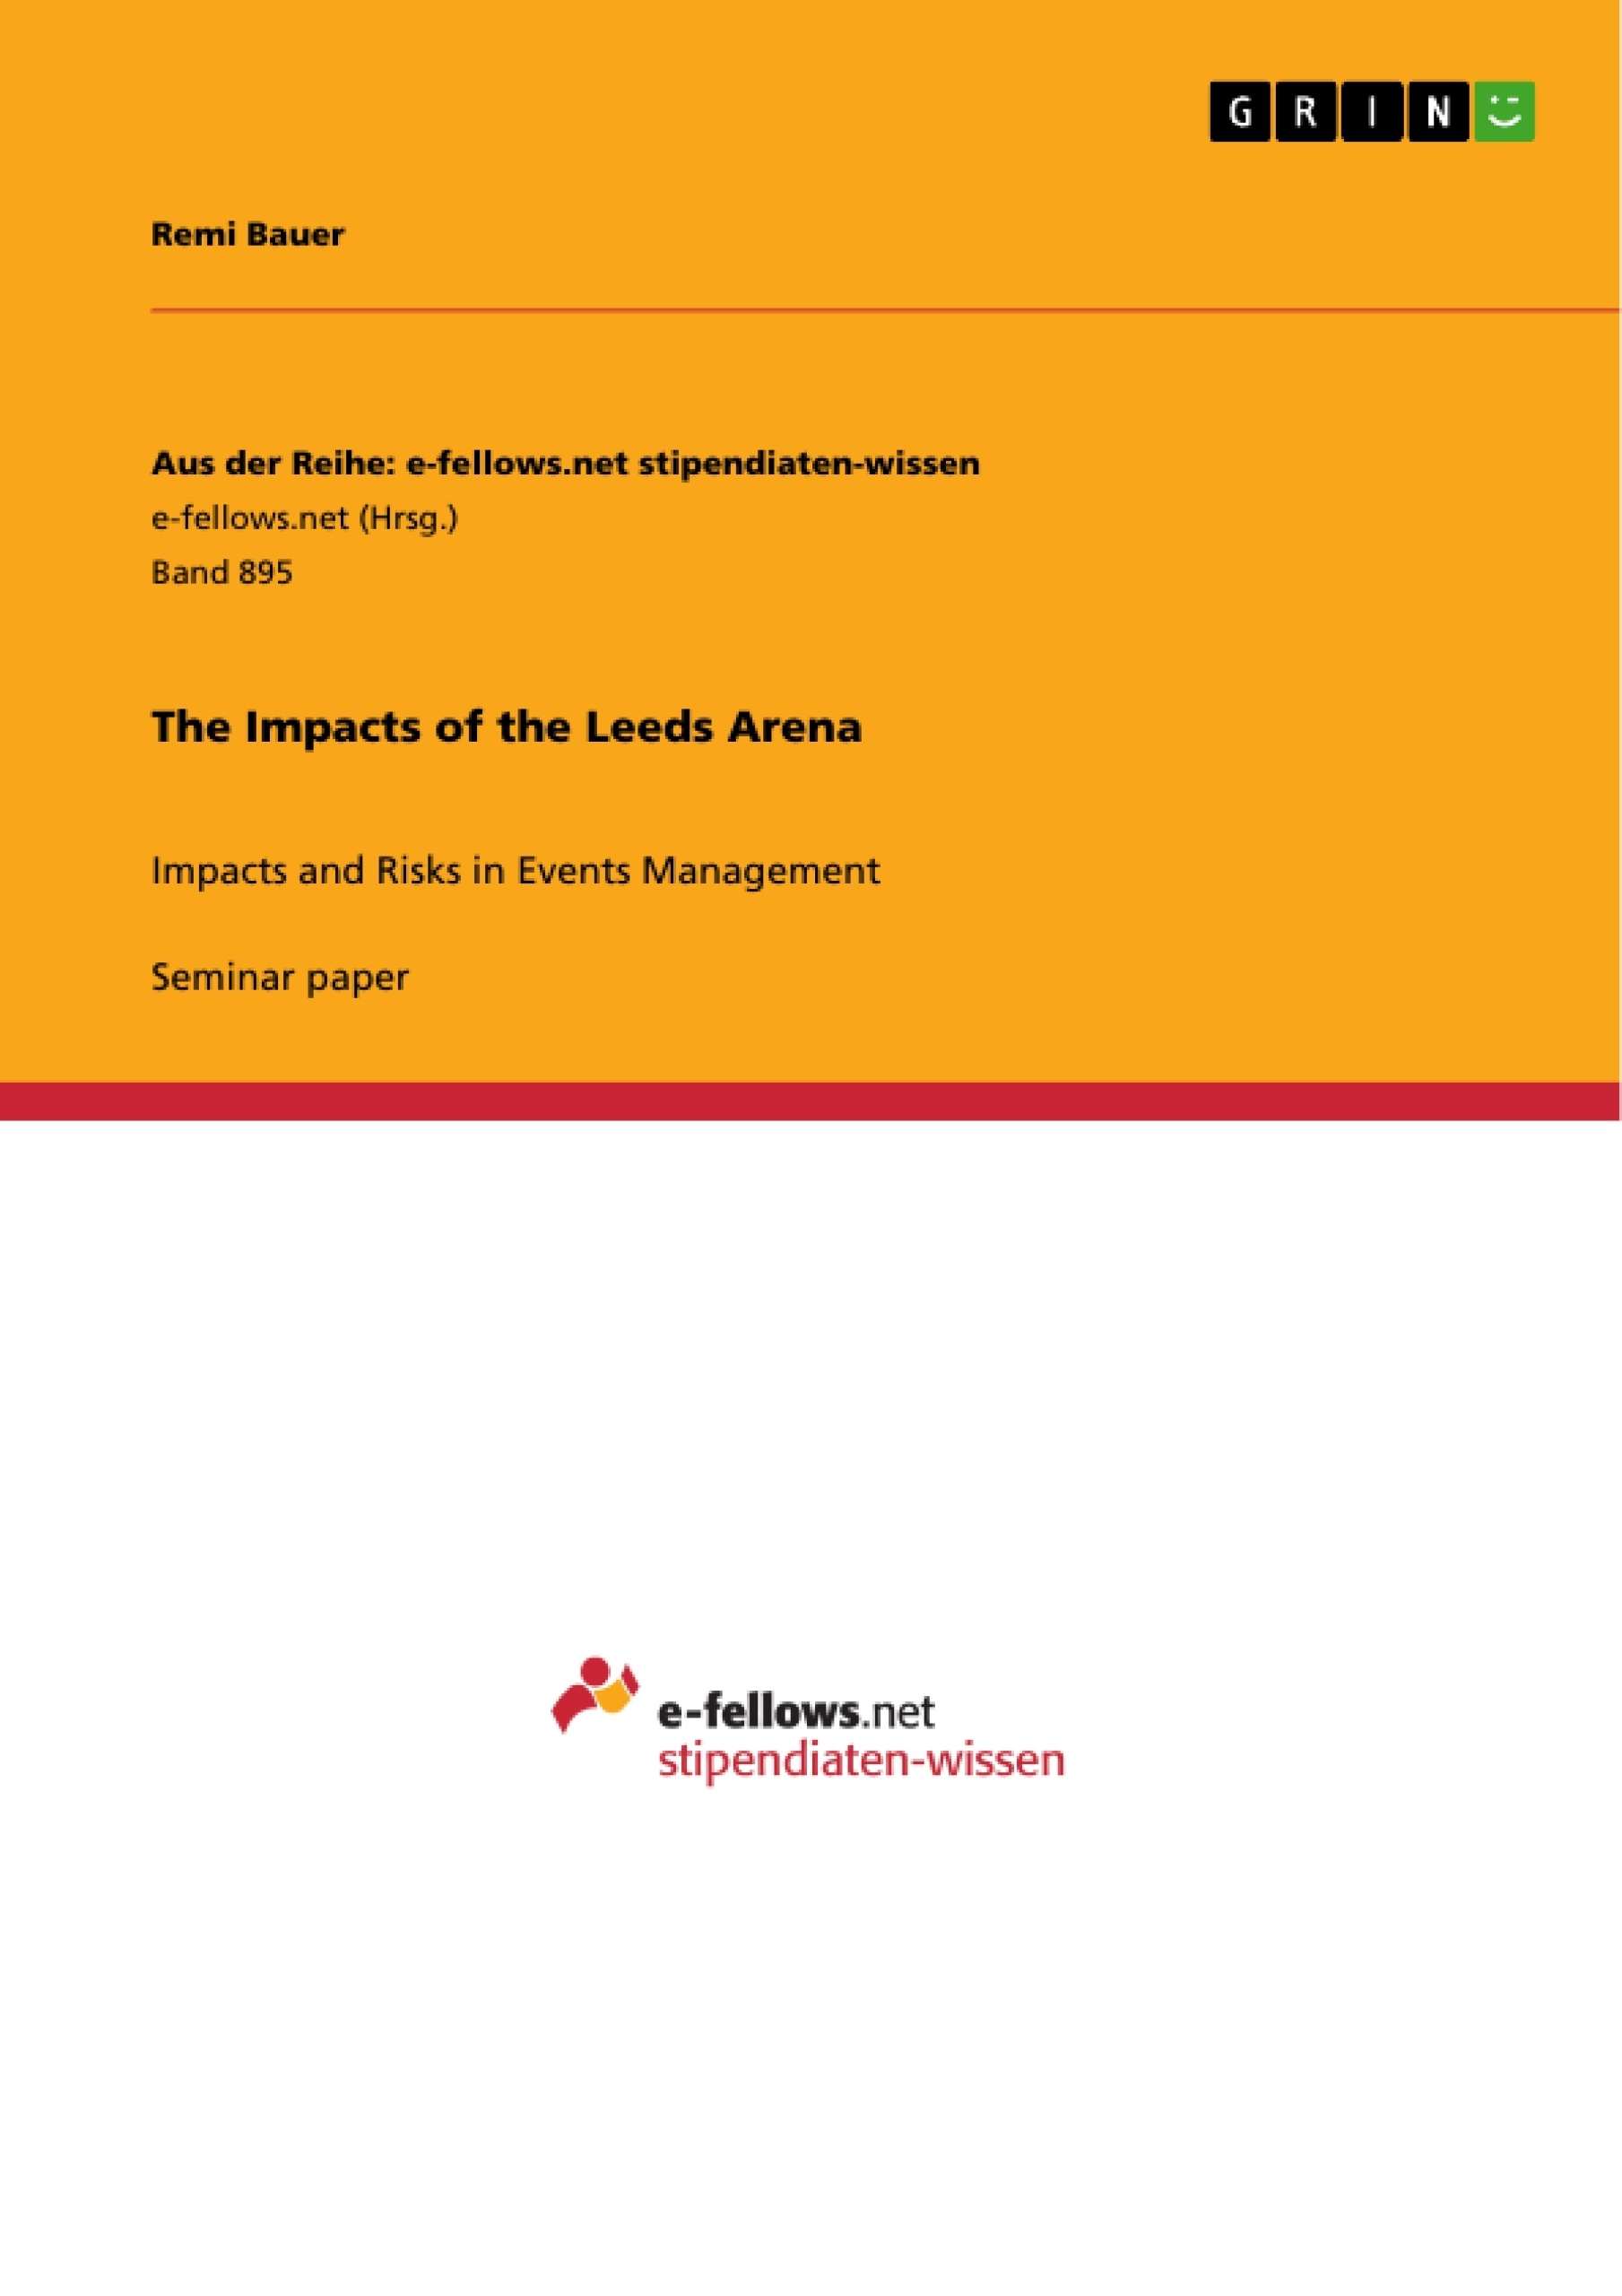 Title: The Impacts of the Leeds Arena